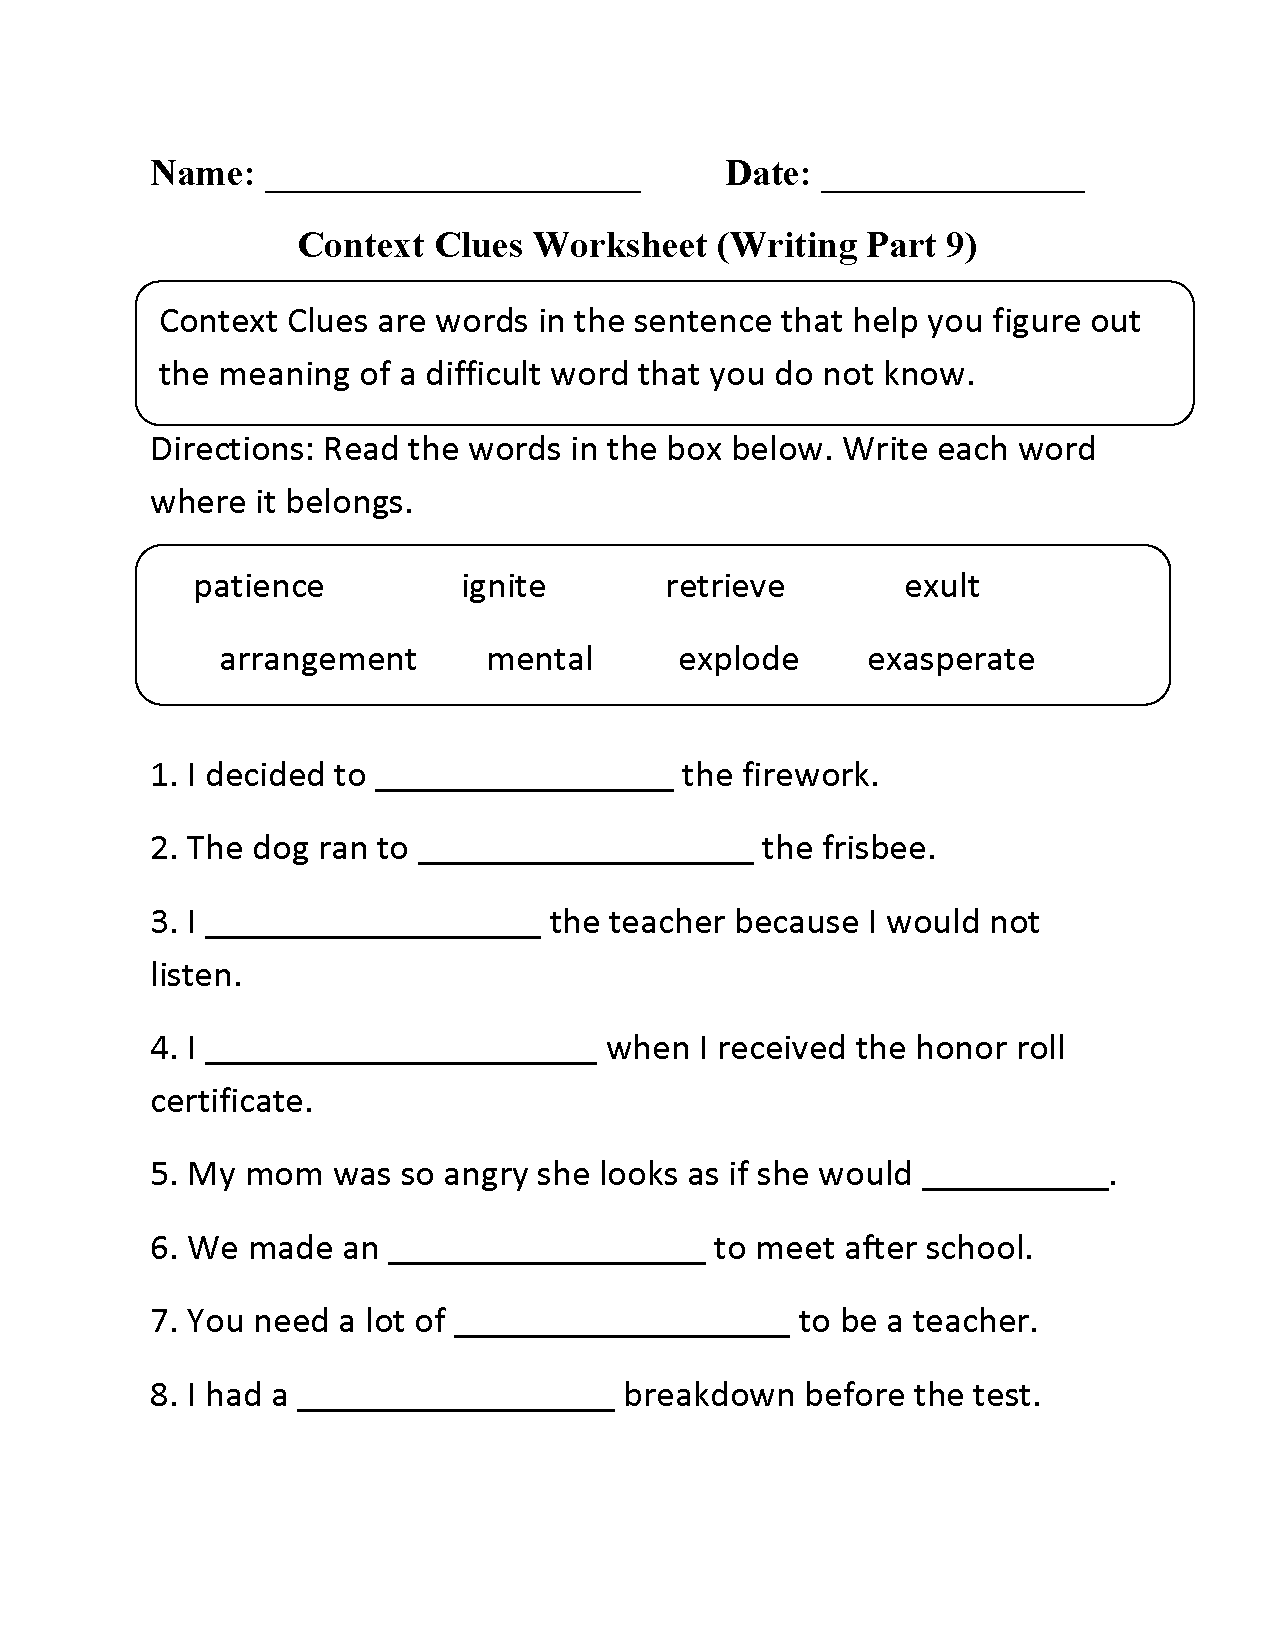 Englishlinx com | Context Clues Worksheets